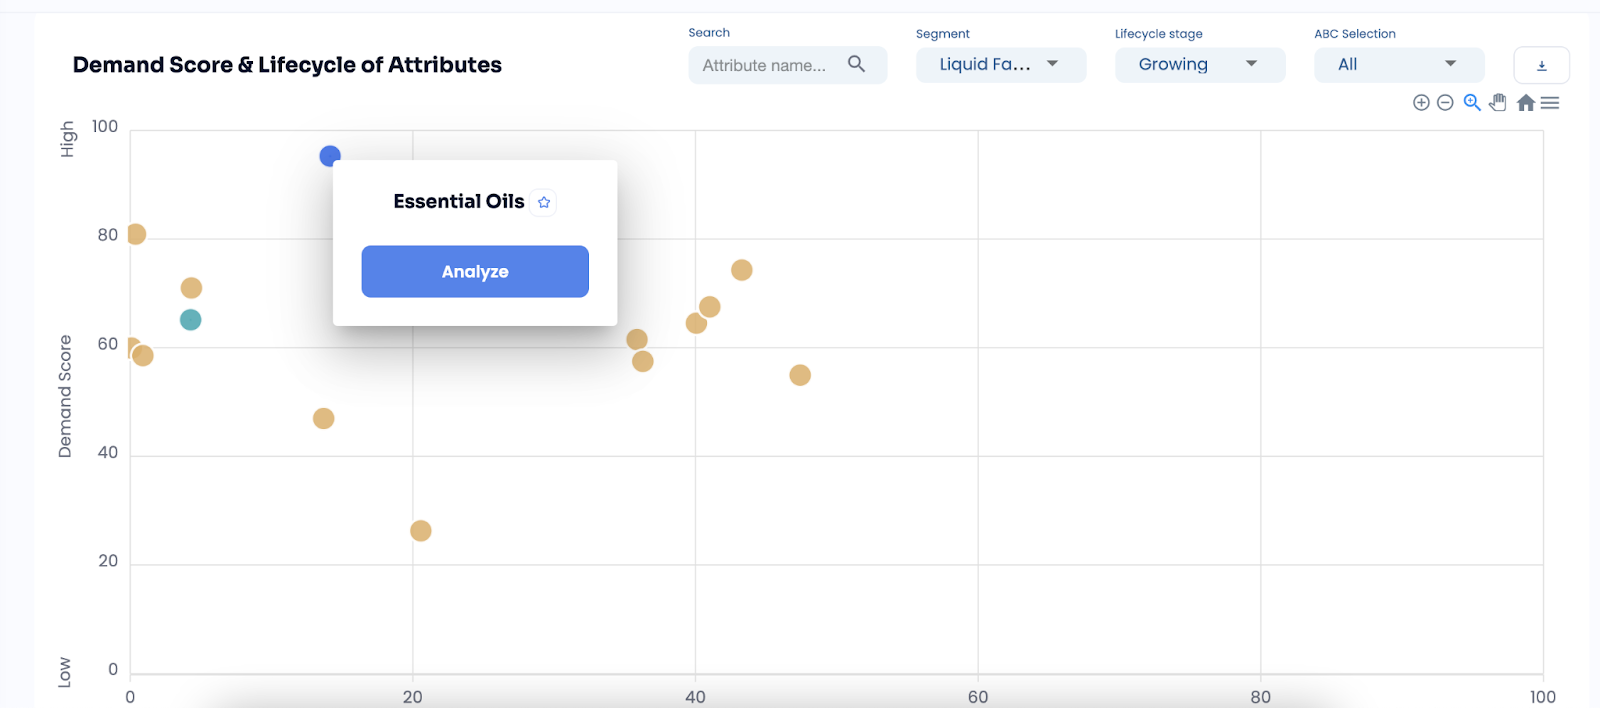 demand score & lifecycle of attributes graph